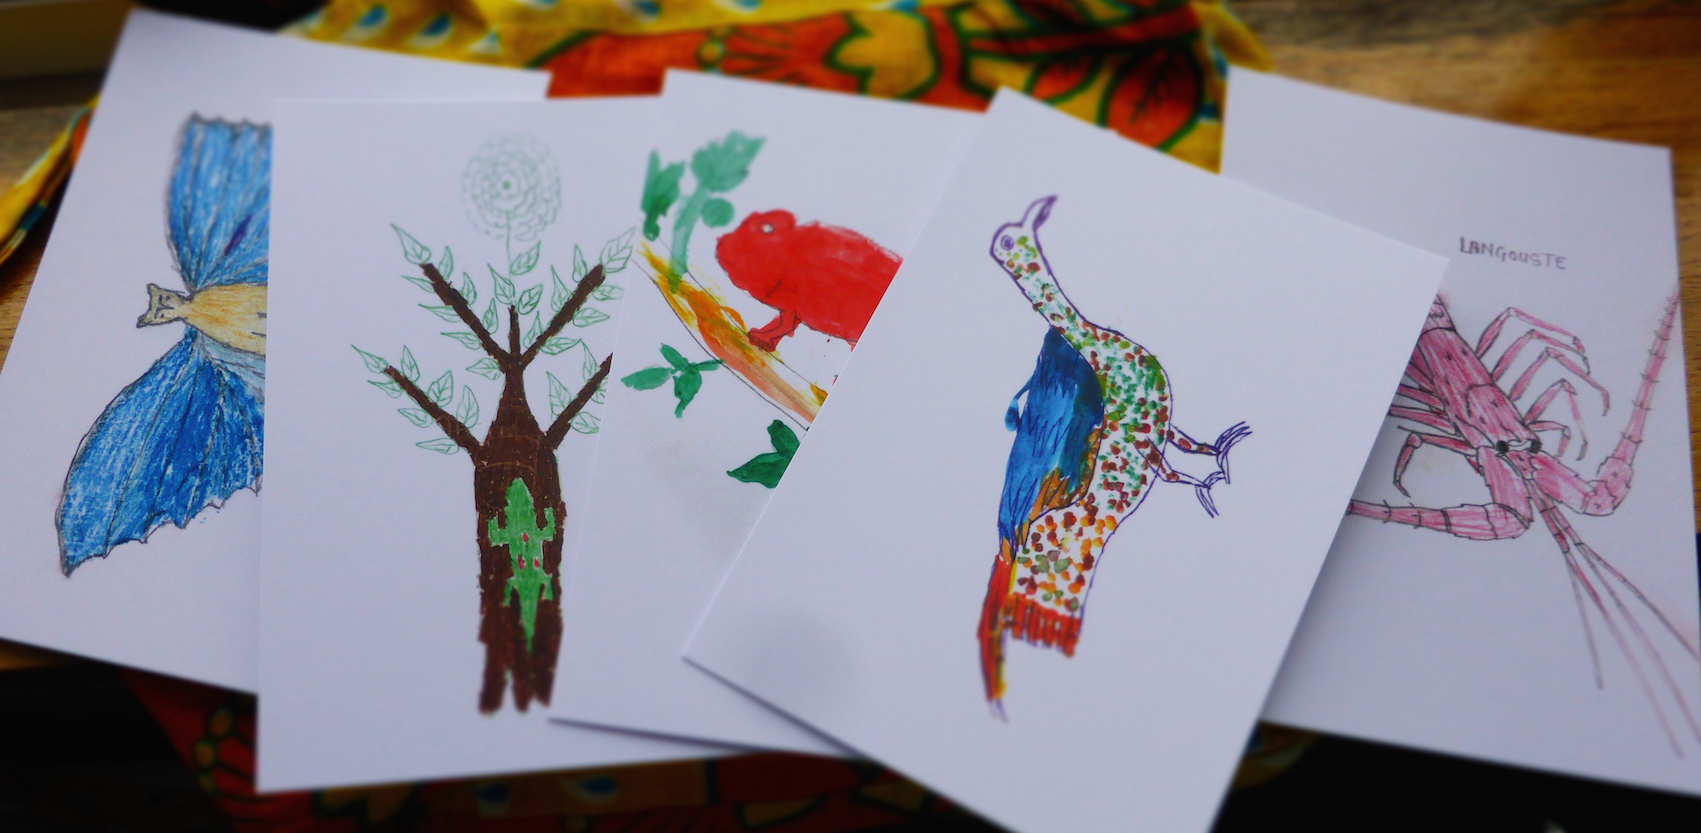 Wild Postcard Project  , Sainte Luce, Madagascar (drawings by the children of SEED Madagascar's Club Atsatsaky), 2018.